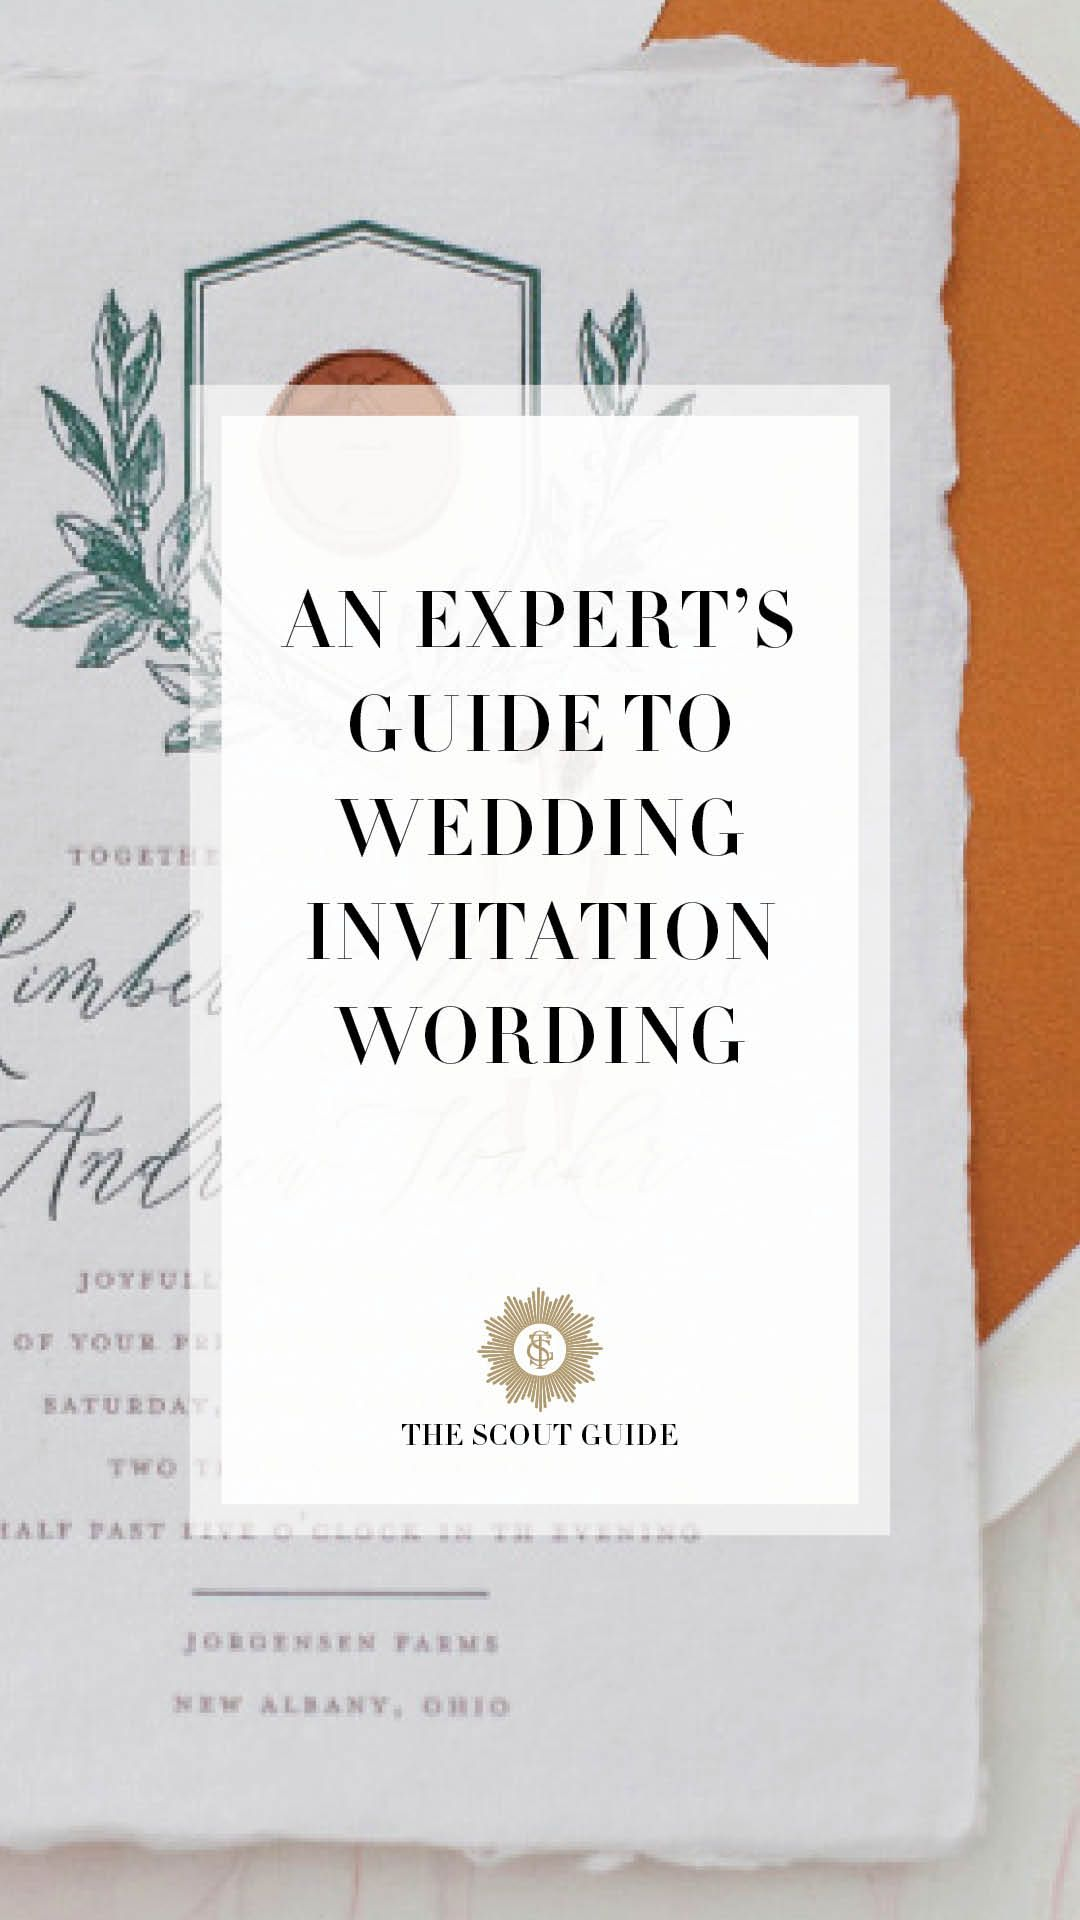 An Expert's Guide to Wedding Invitation Wording